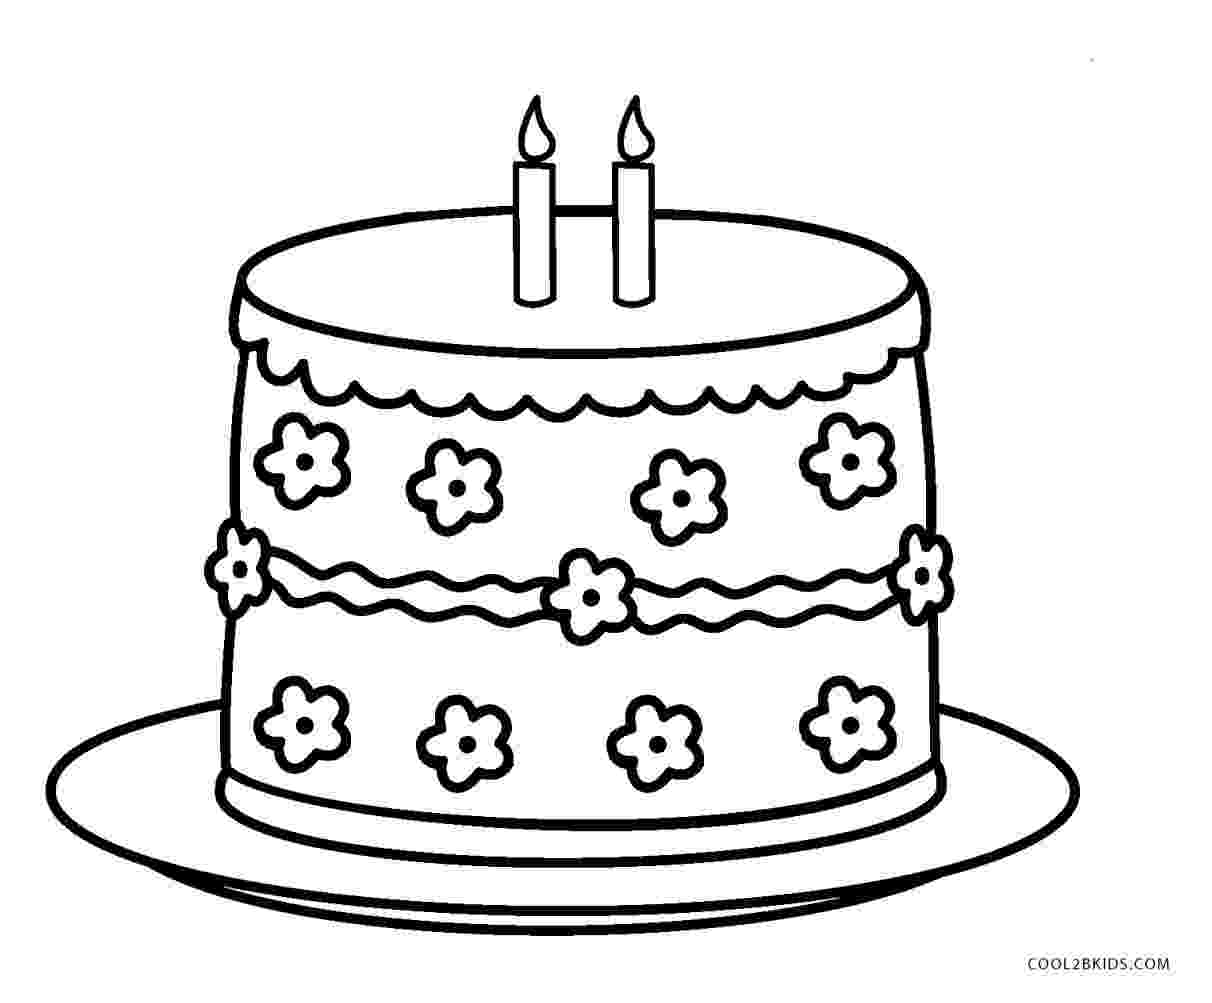 cake printable free printable birthday cake coloring pages for kids printable cake